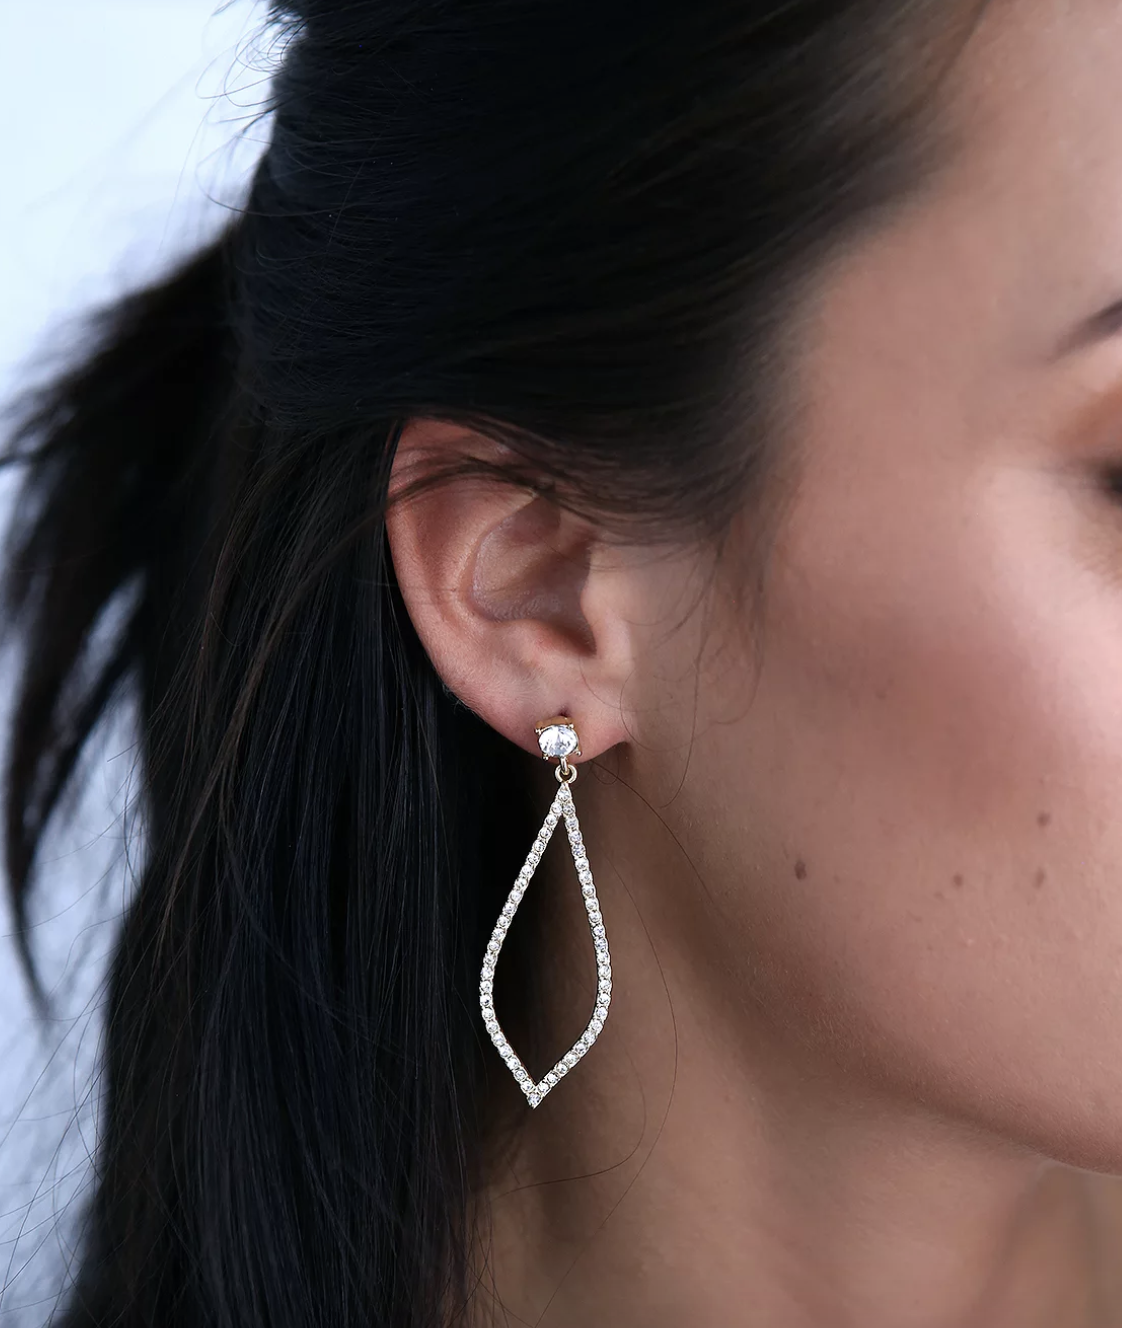 model wearing teardrop-shaped earrings with rhinestones